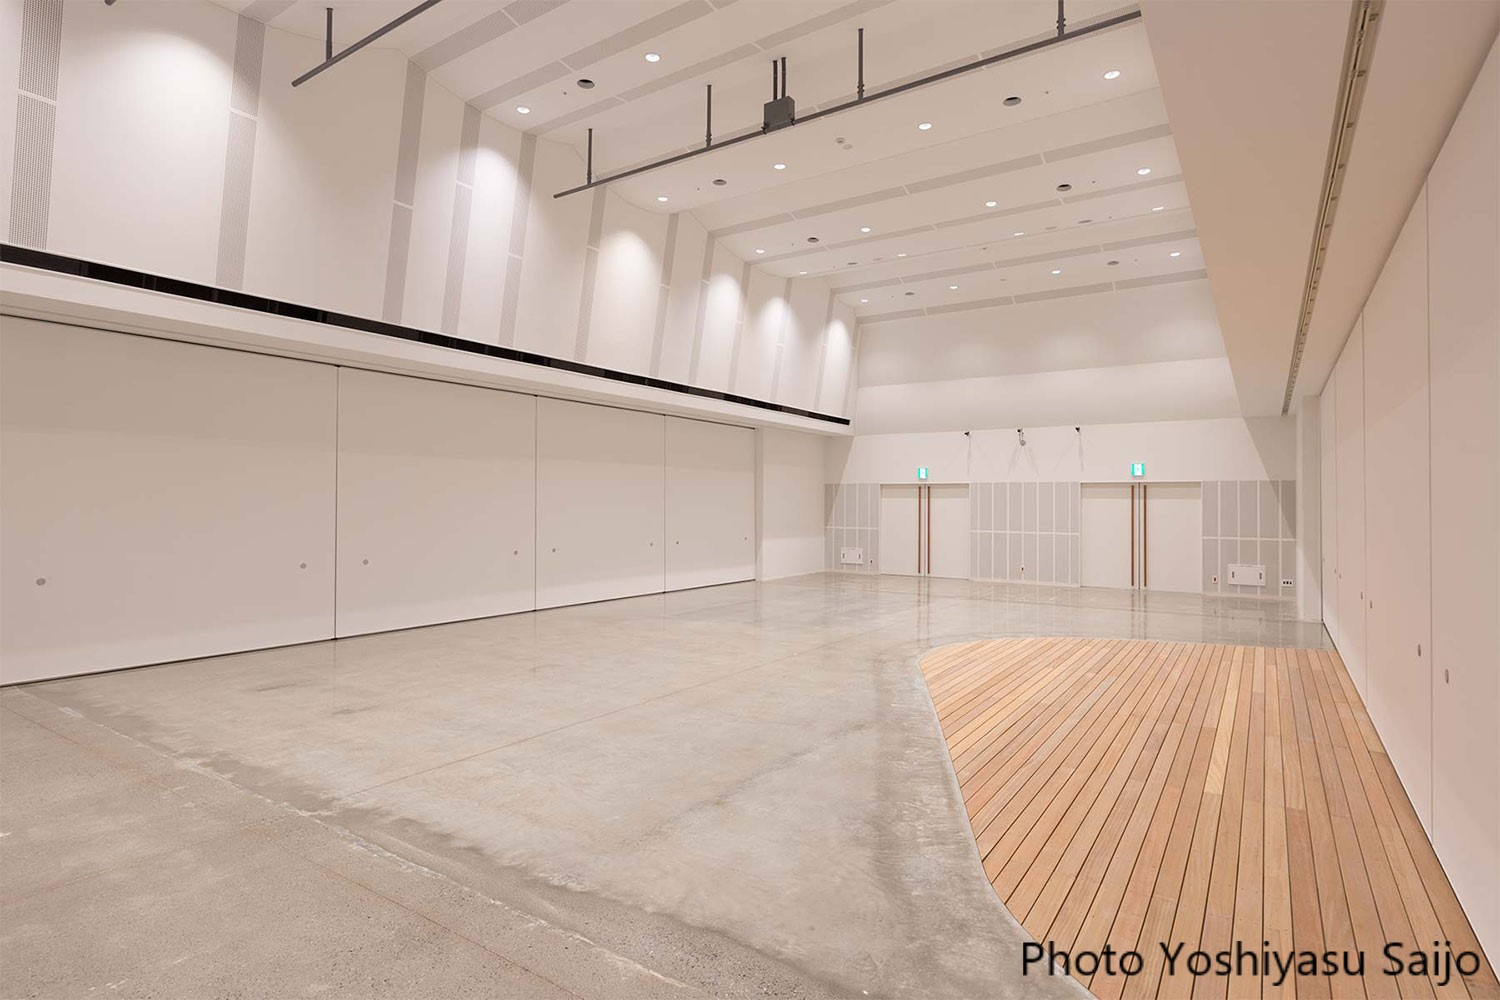 KAMAISHI CIVIC HALL TETTO